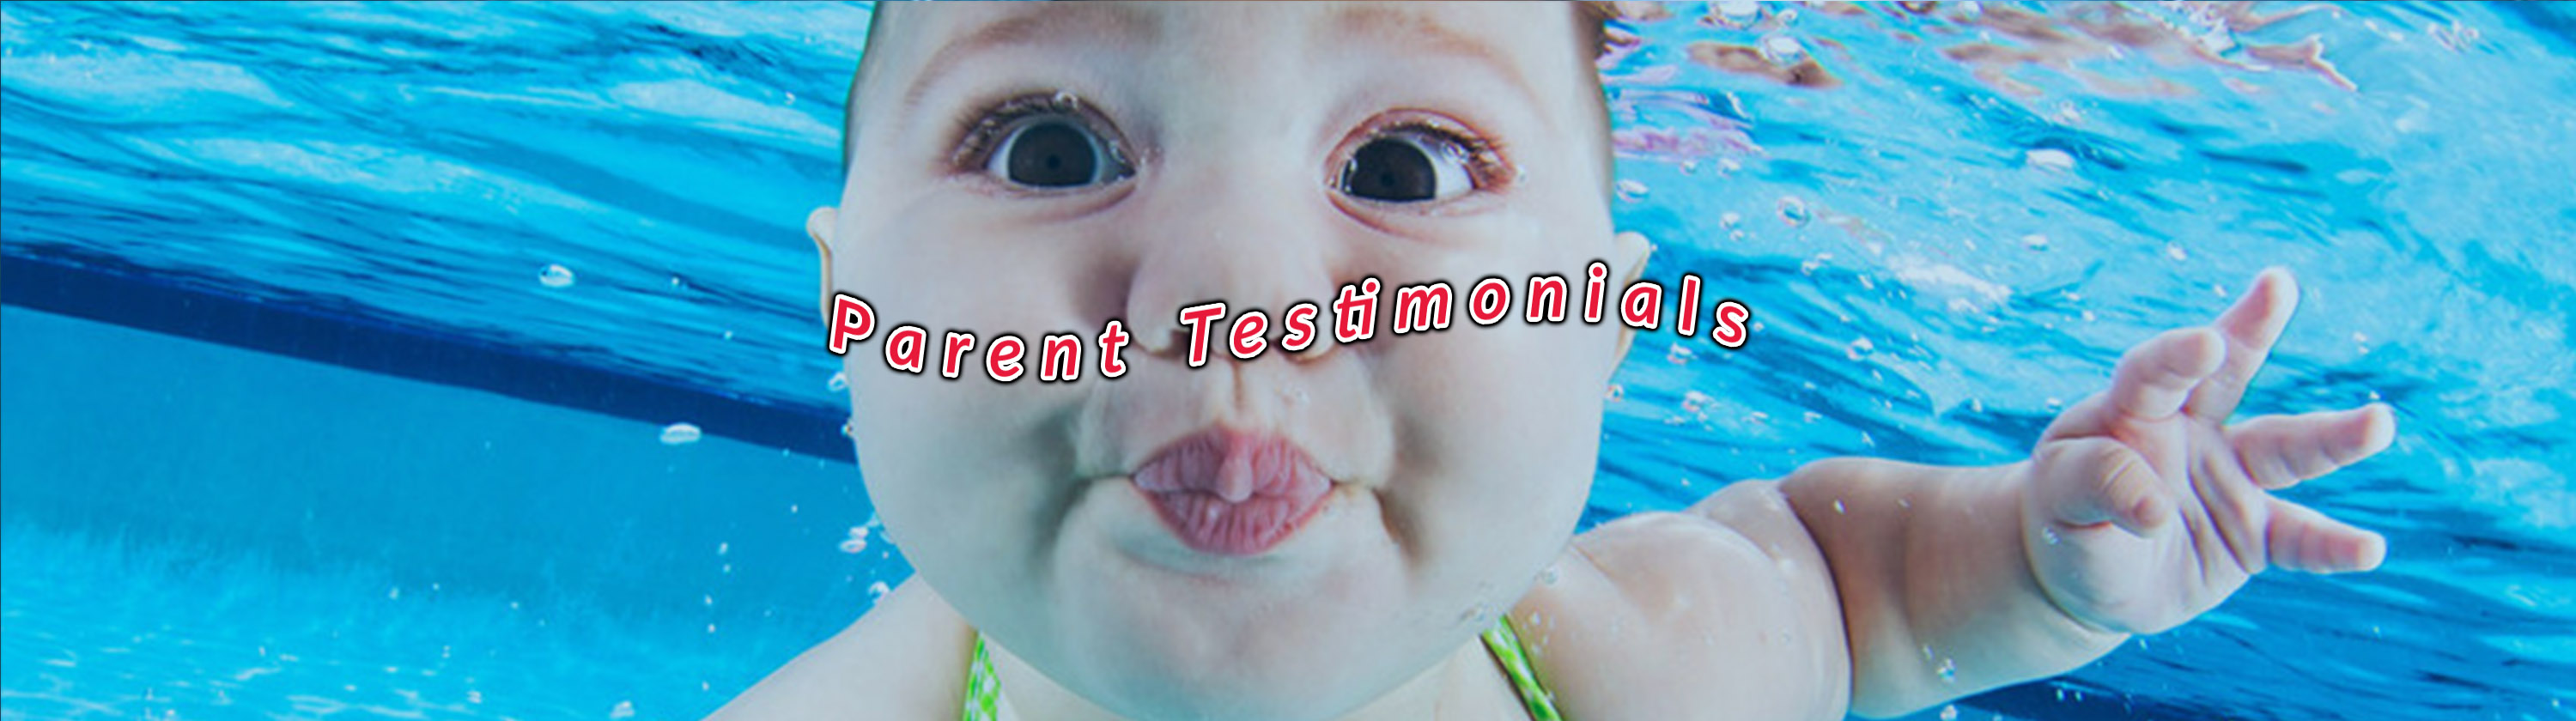 Waterwise_Infant_Aquatics_Survival_Swim_Swimming_Lessons_Perth_testimonials_1